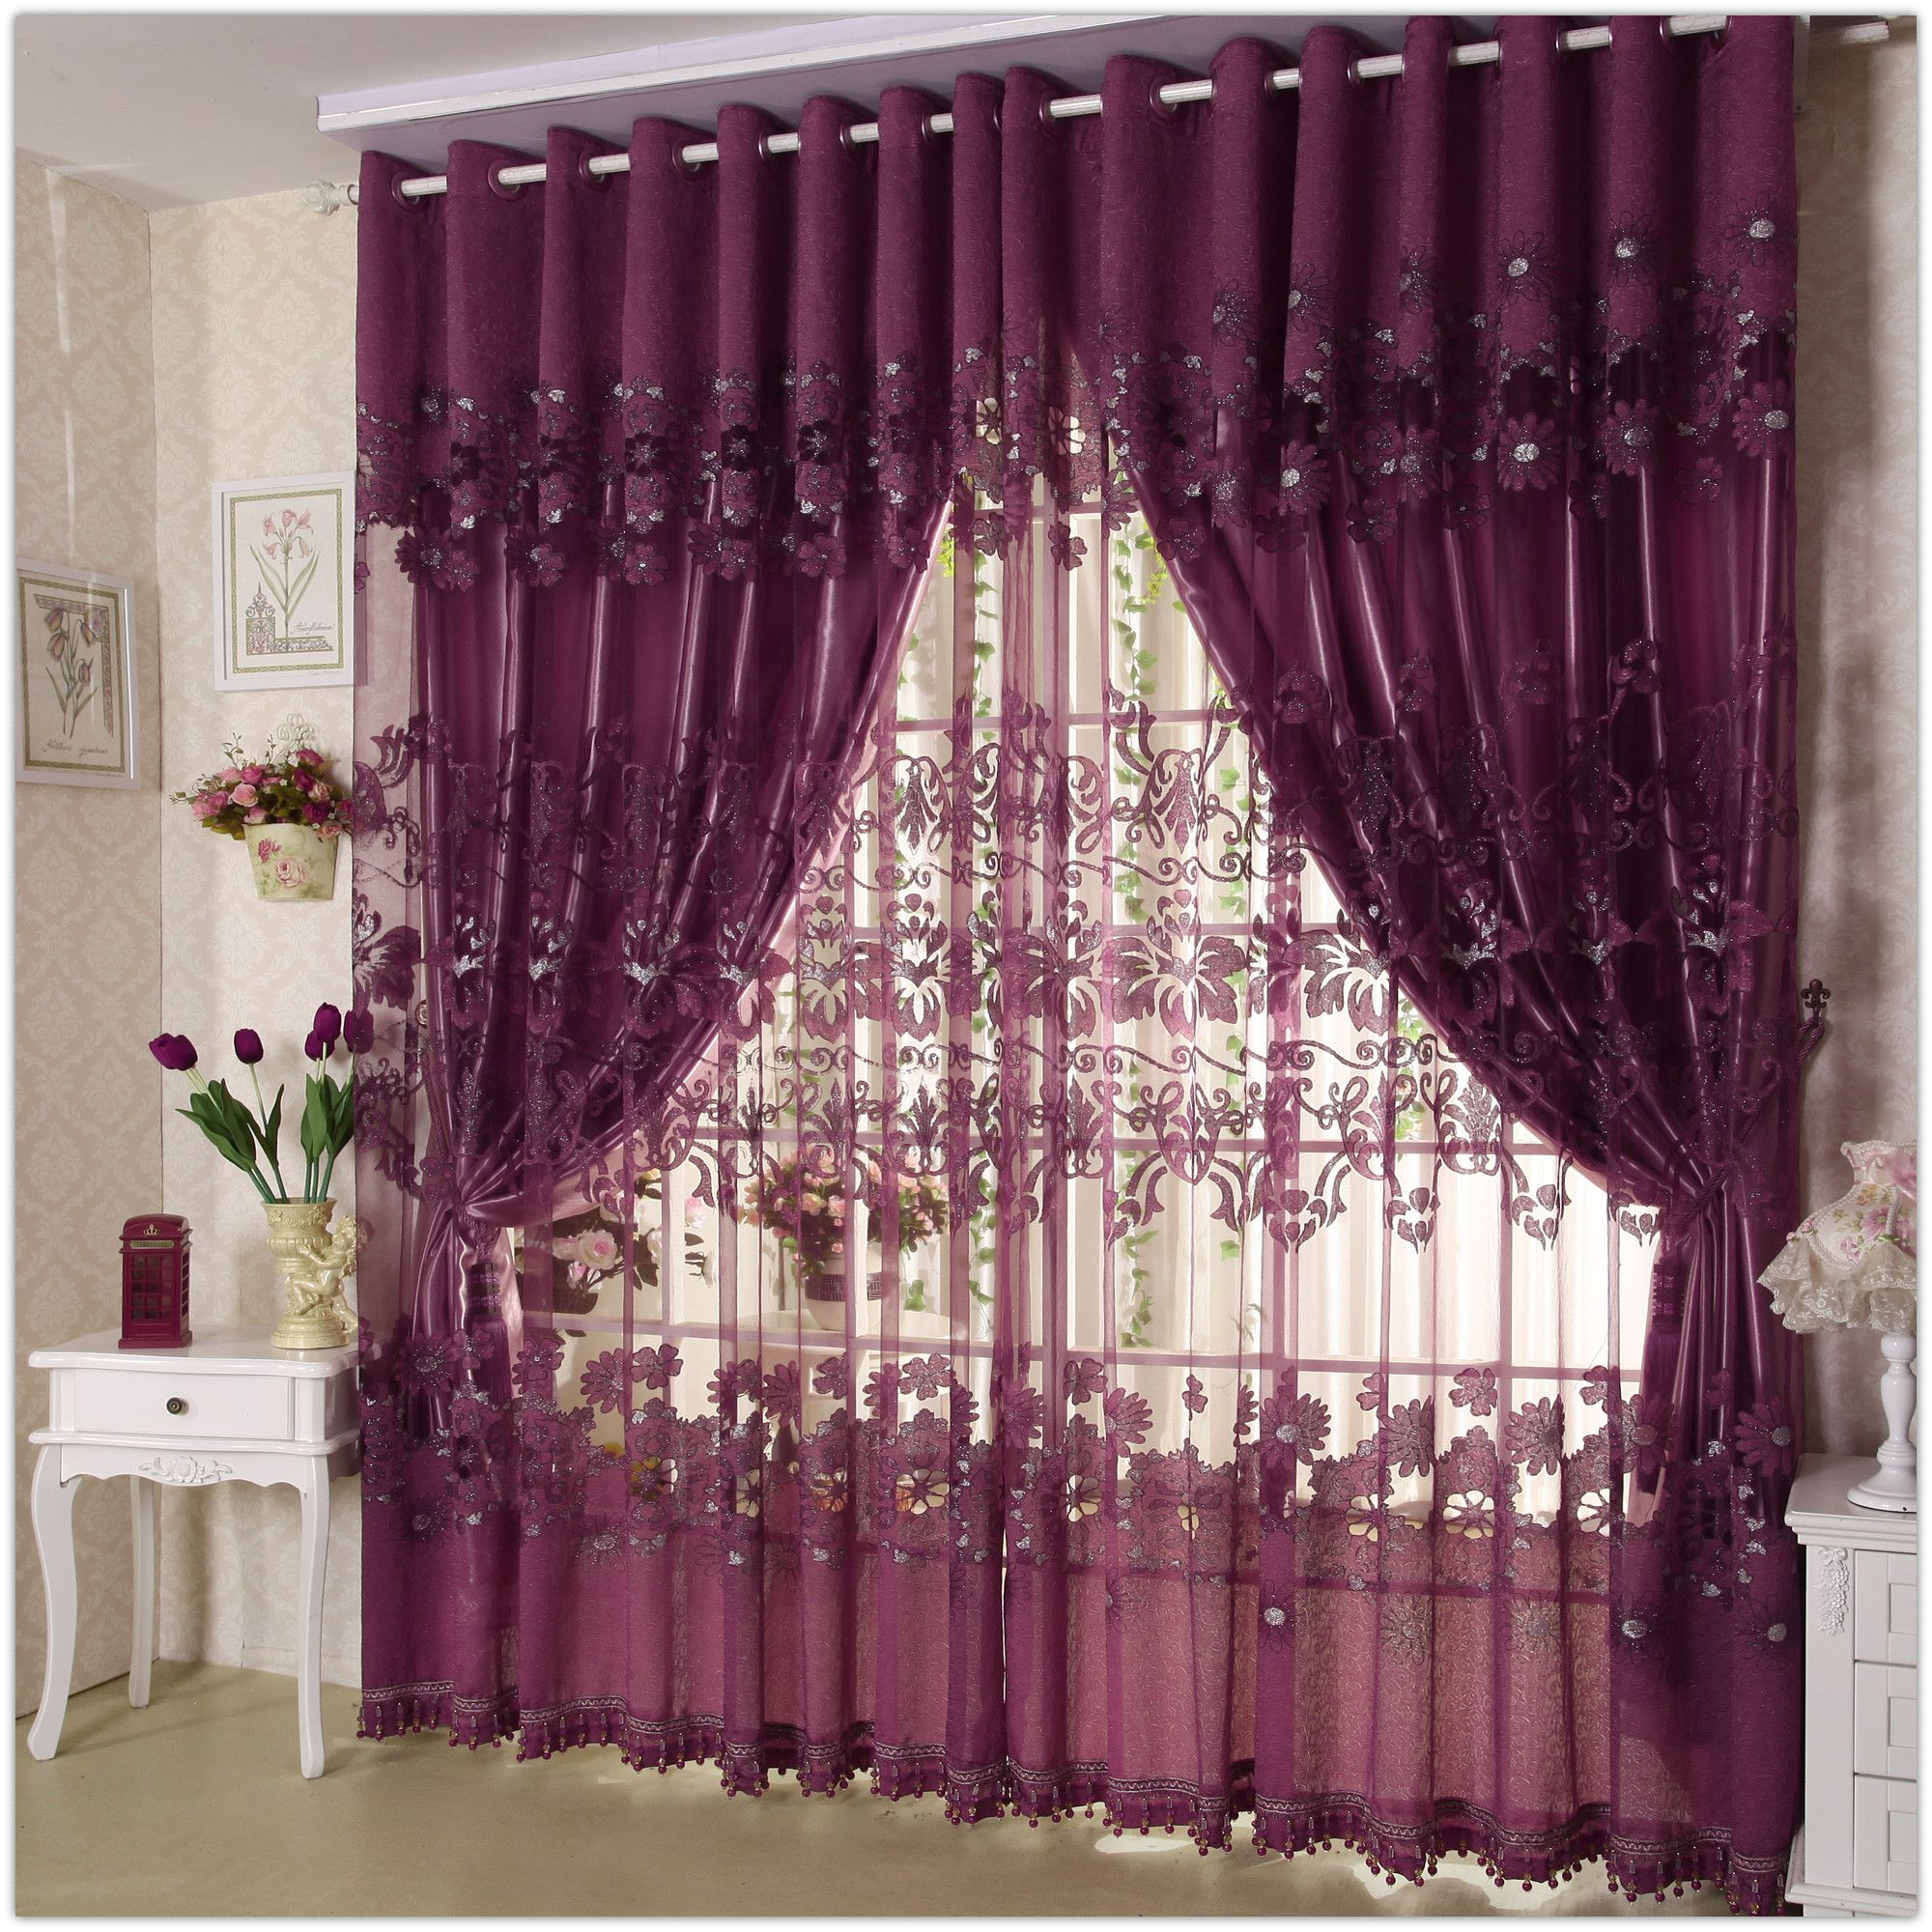 Charming Design Of Modern Curtain Presenting Elegant Purple Theme Combined By Florals On The Vitrage And